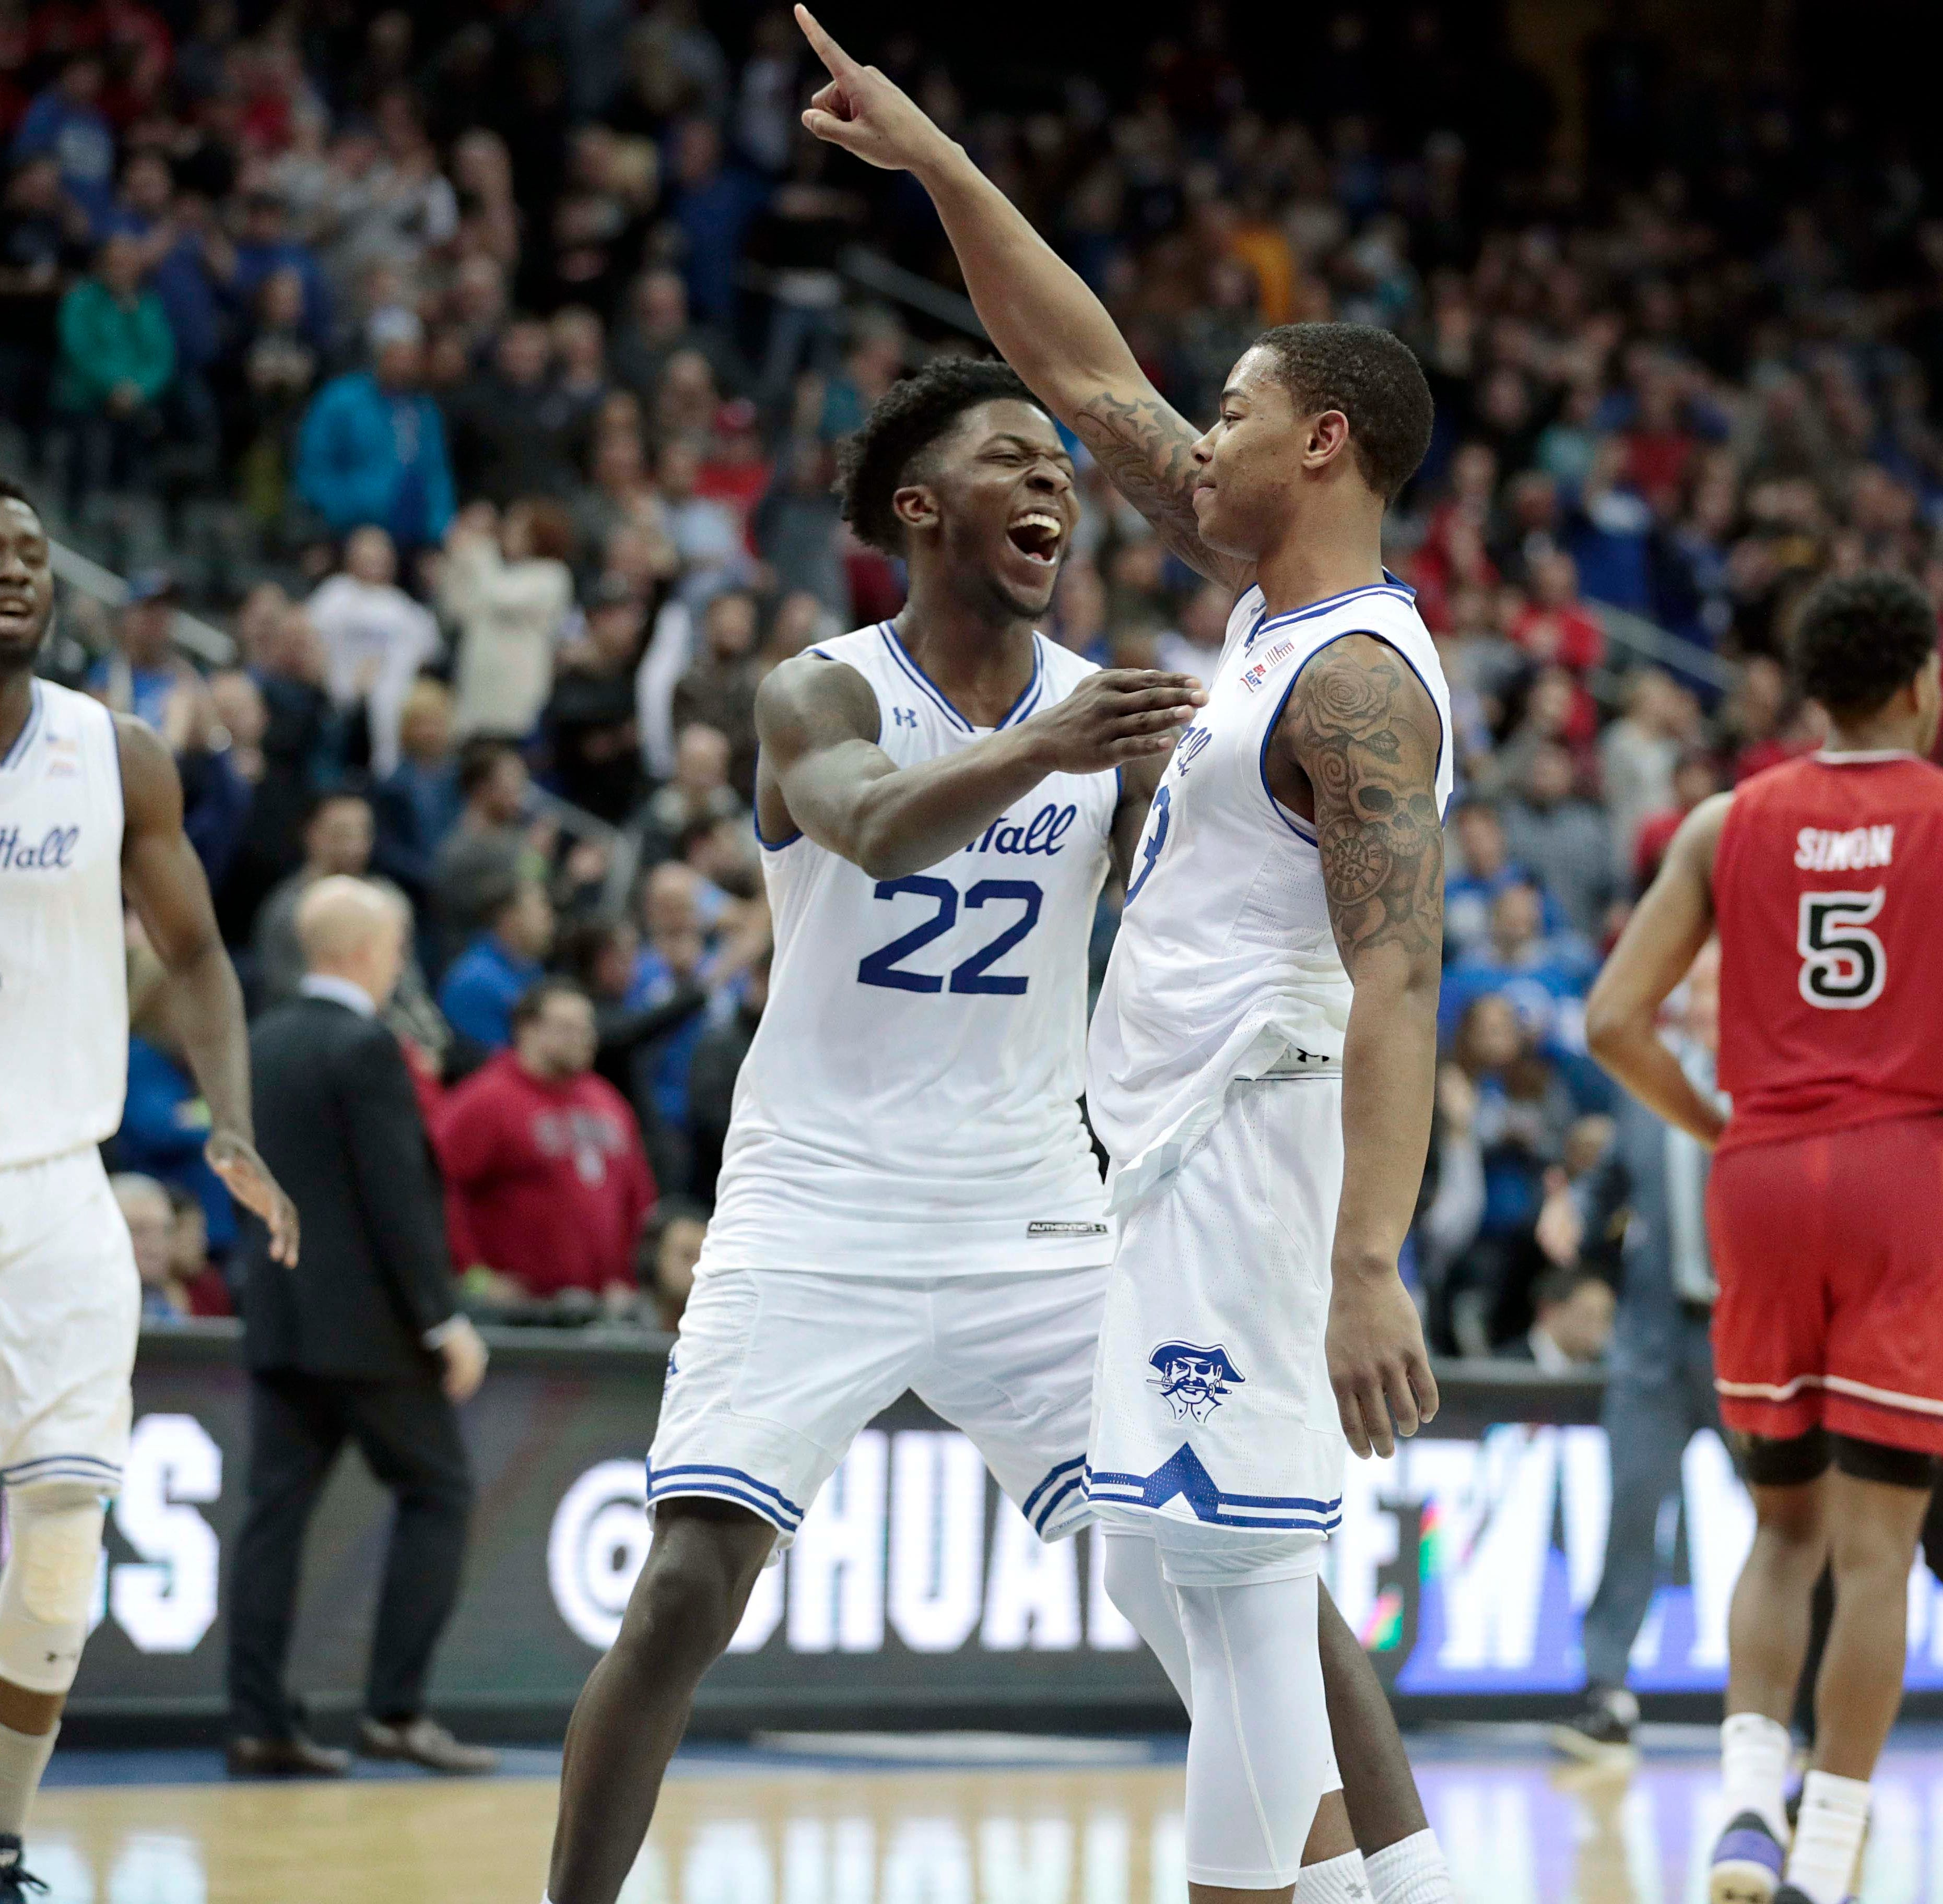 Seton Hall basketball: St. John's rivalry takes center stage with the stakes piled high